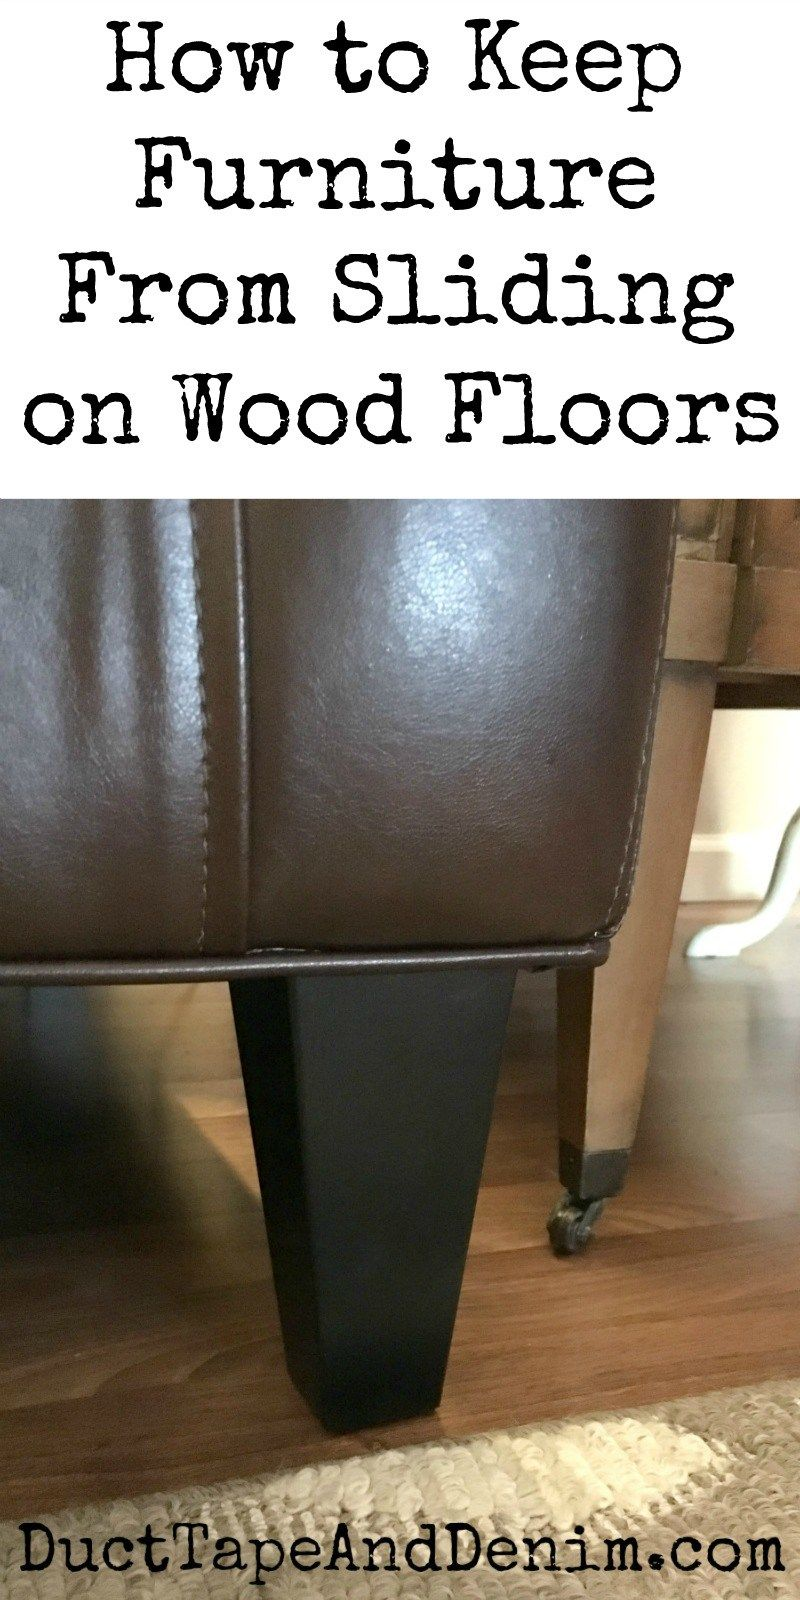 How To Keep Furniture From Sliding On Wood Floors Duct Tape And